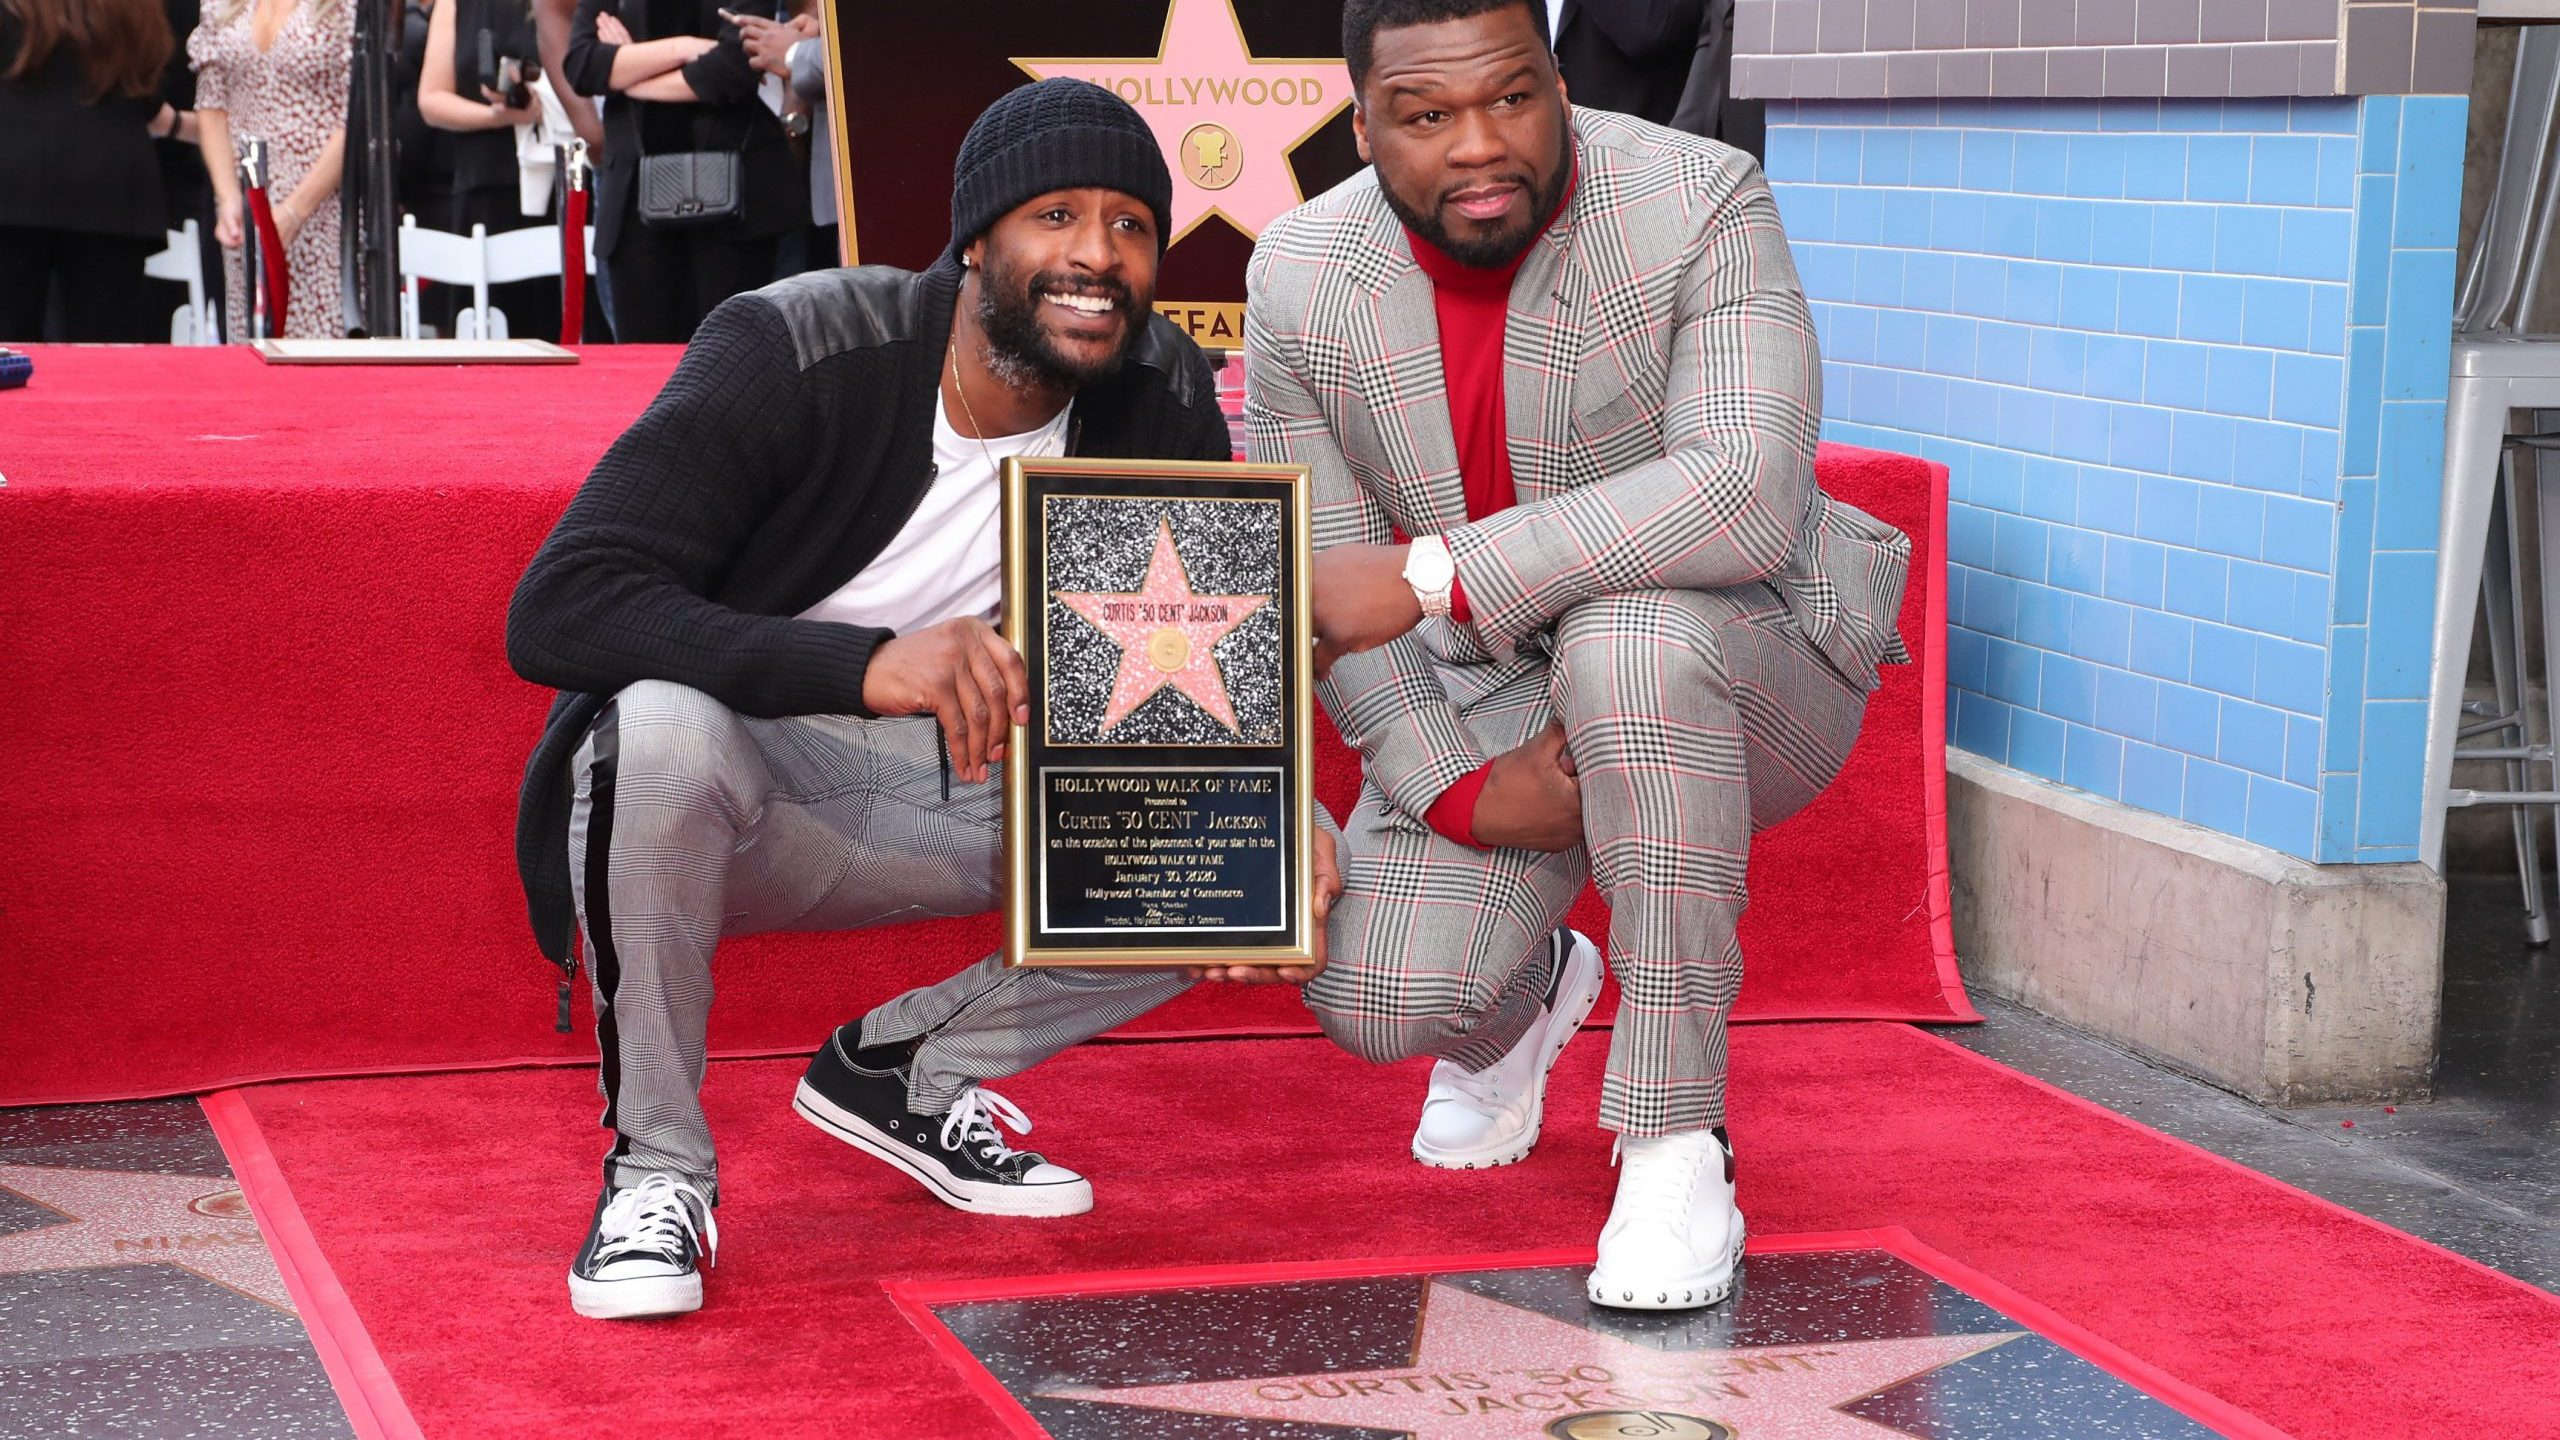 50 Cent receives Hollywood Walk of Fame star fox5sandiegocom 2560x1440